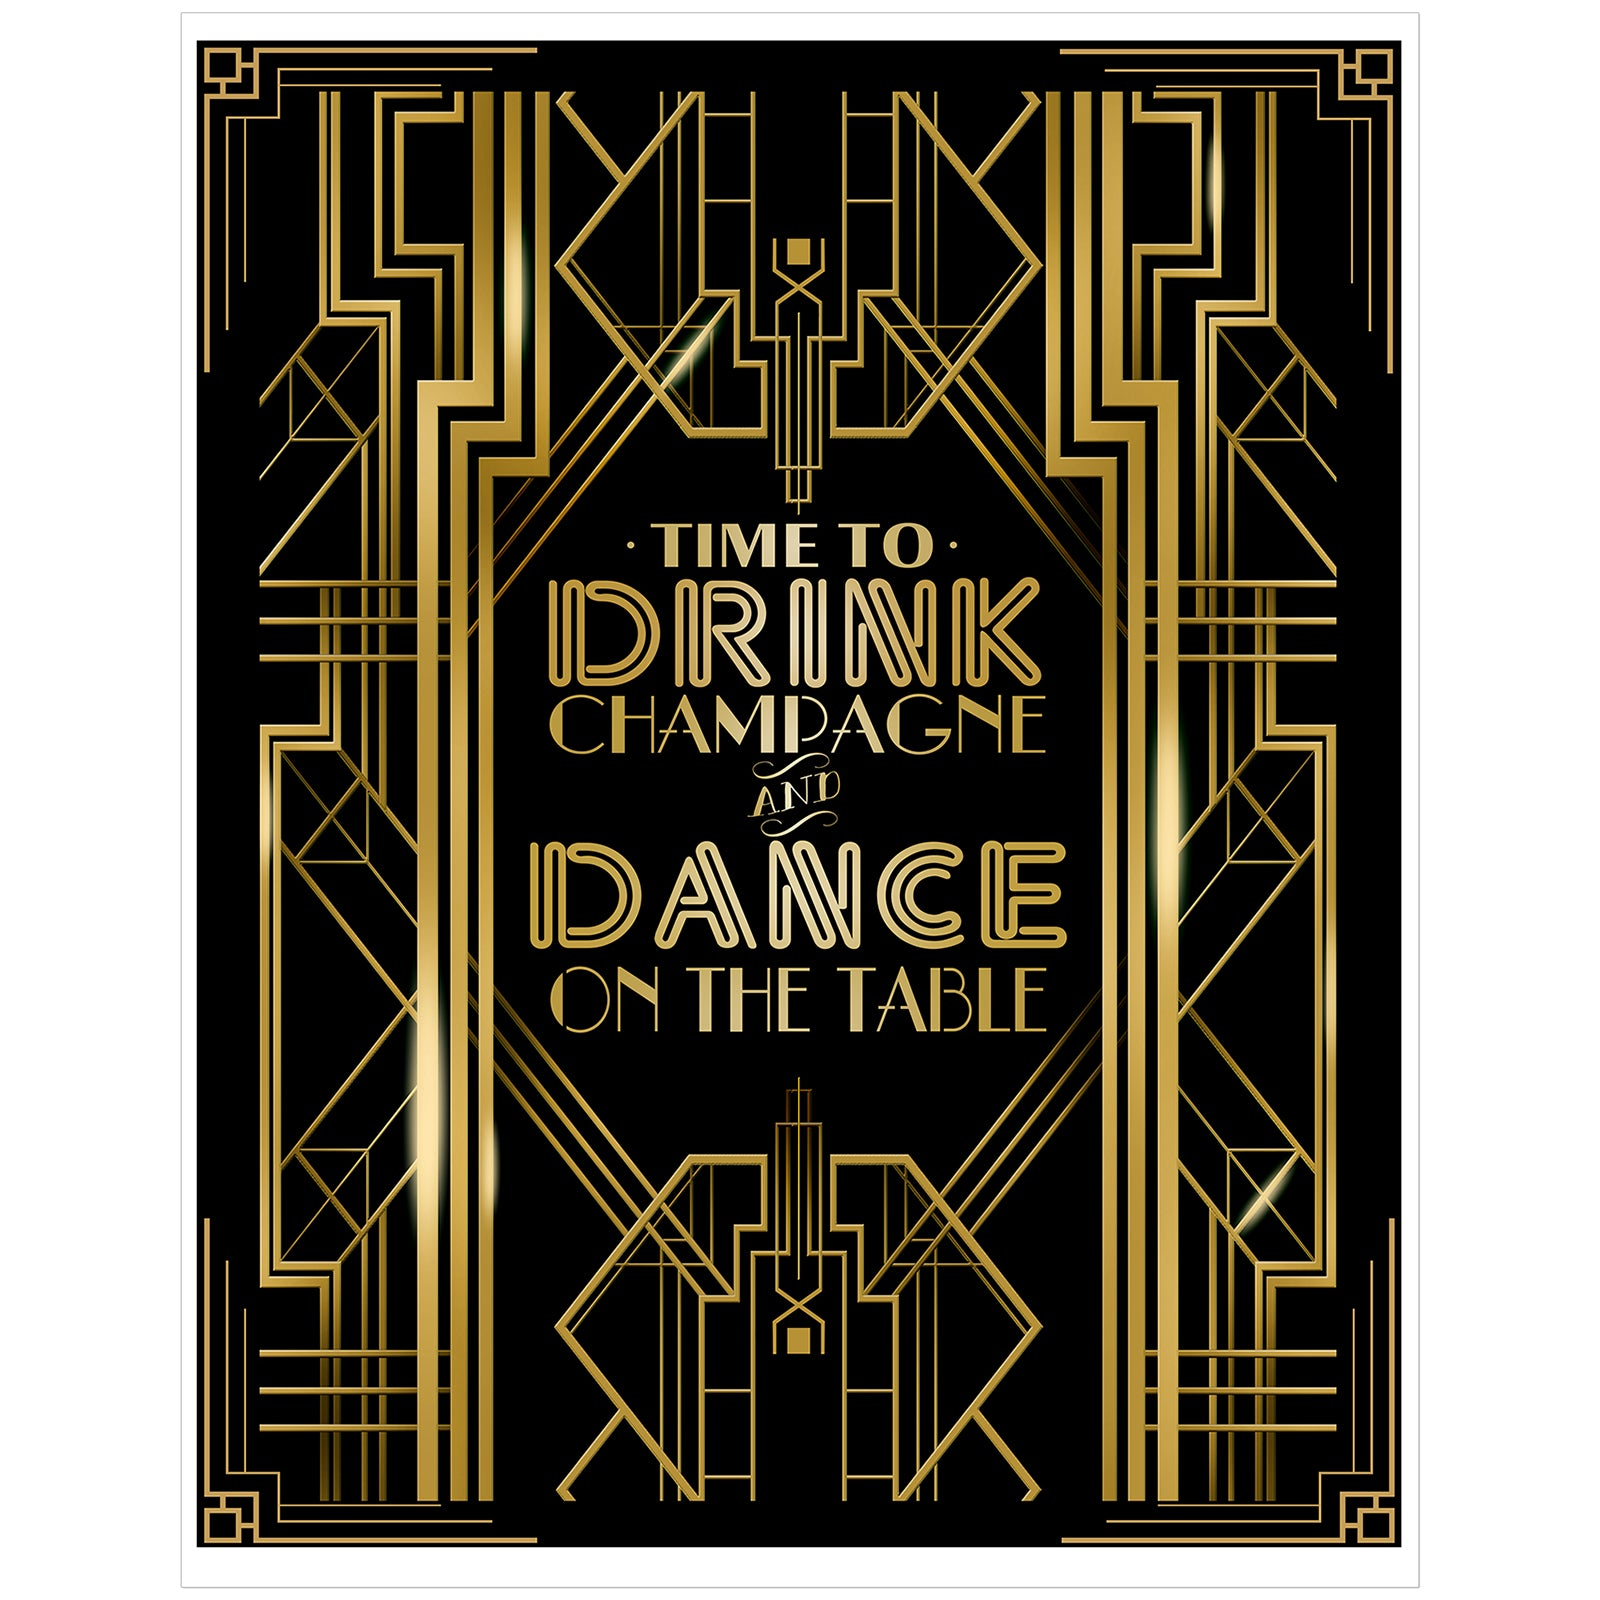 Roaring 20s Art Deco Poster|Time to Drink Champagne & Dance on the Table Party|16x12inch A3